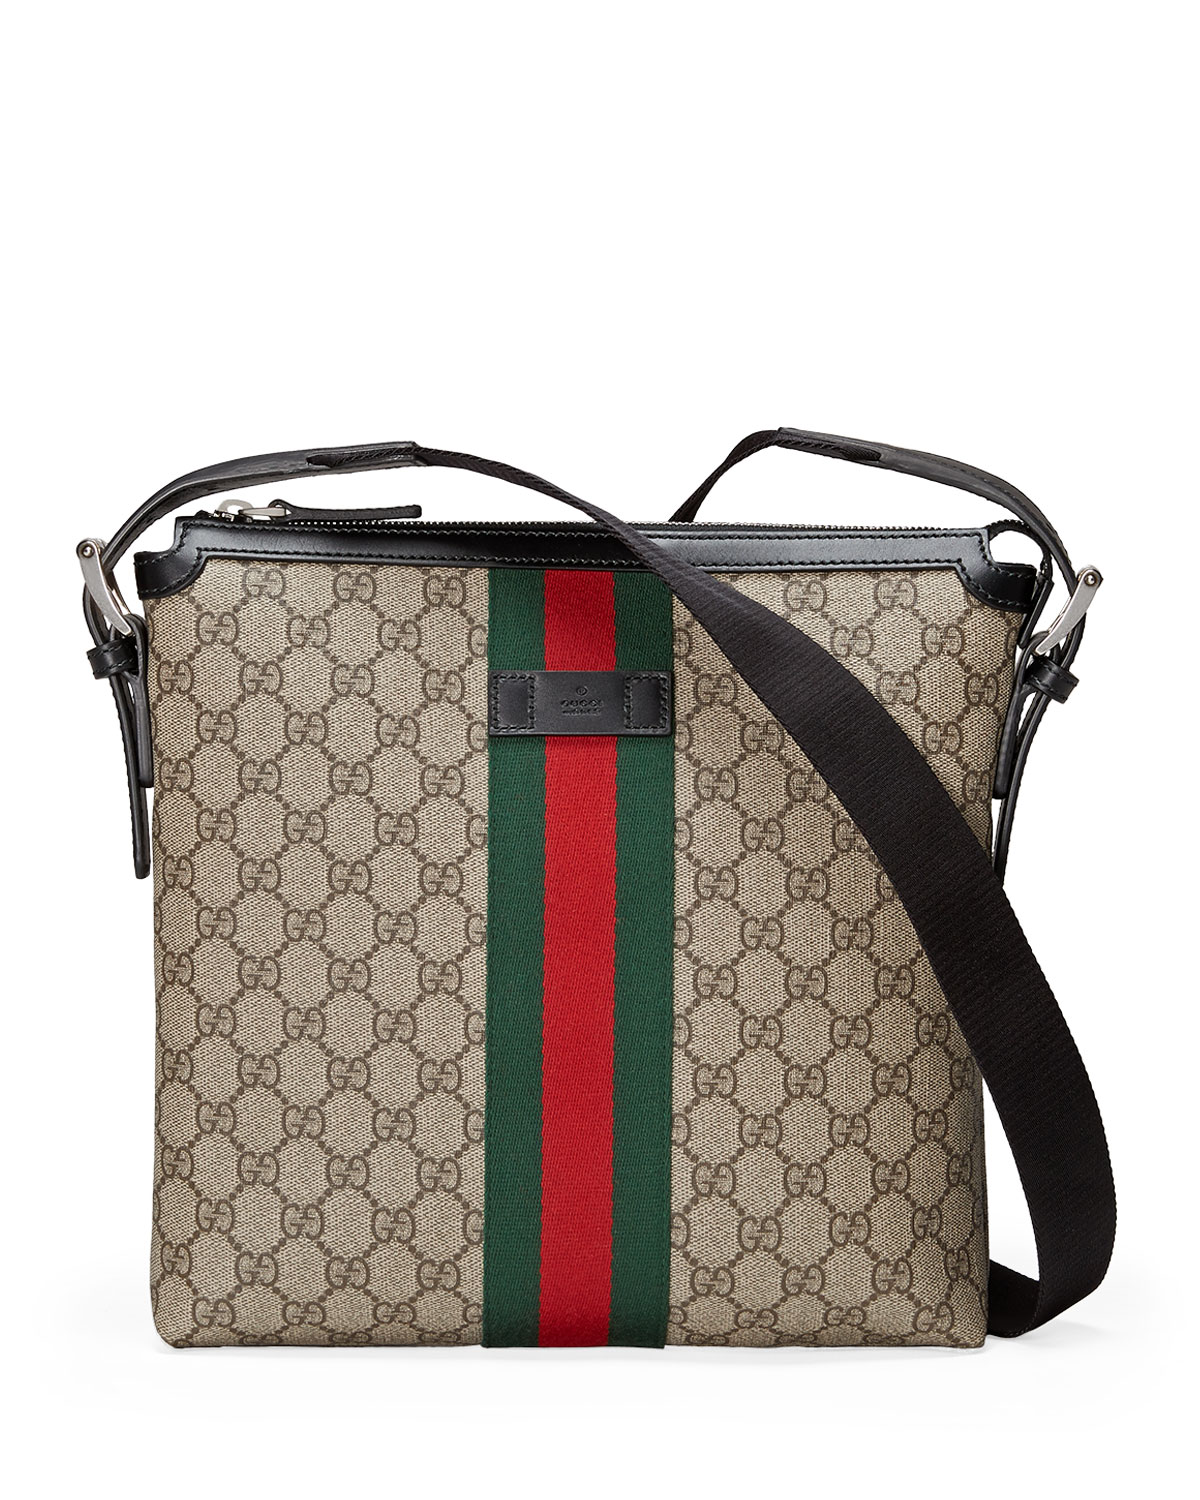 796289a8636 Gucci Web GG Supreme Messenger Bag